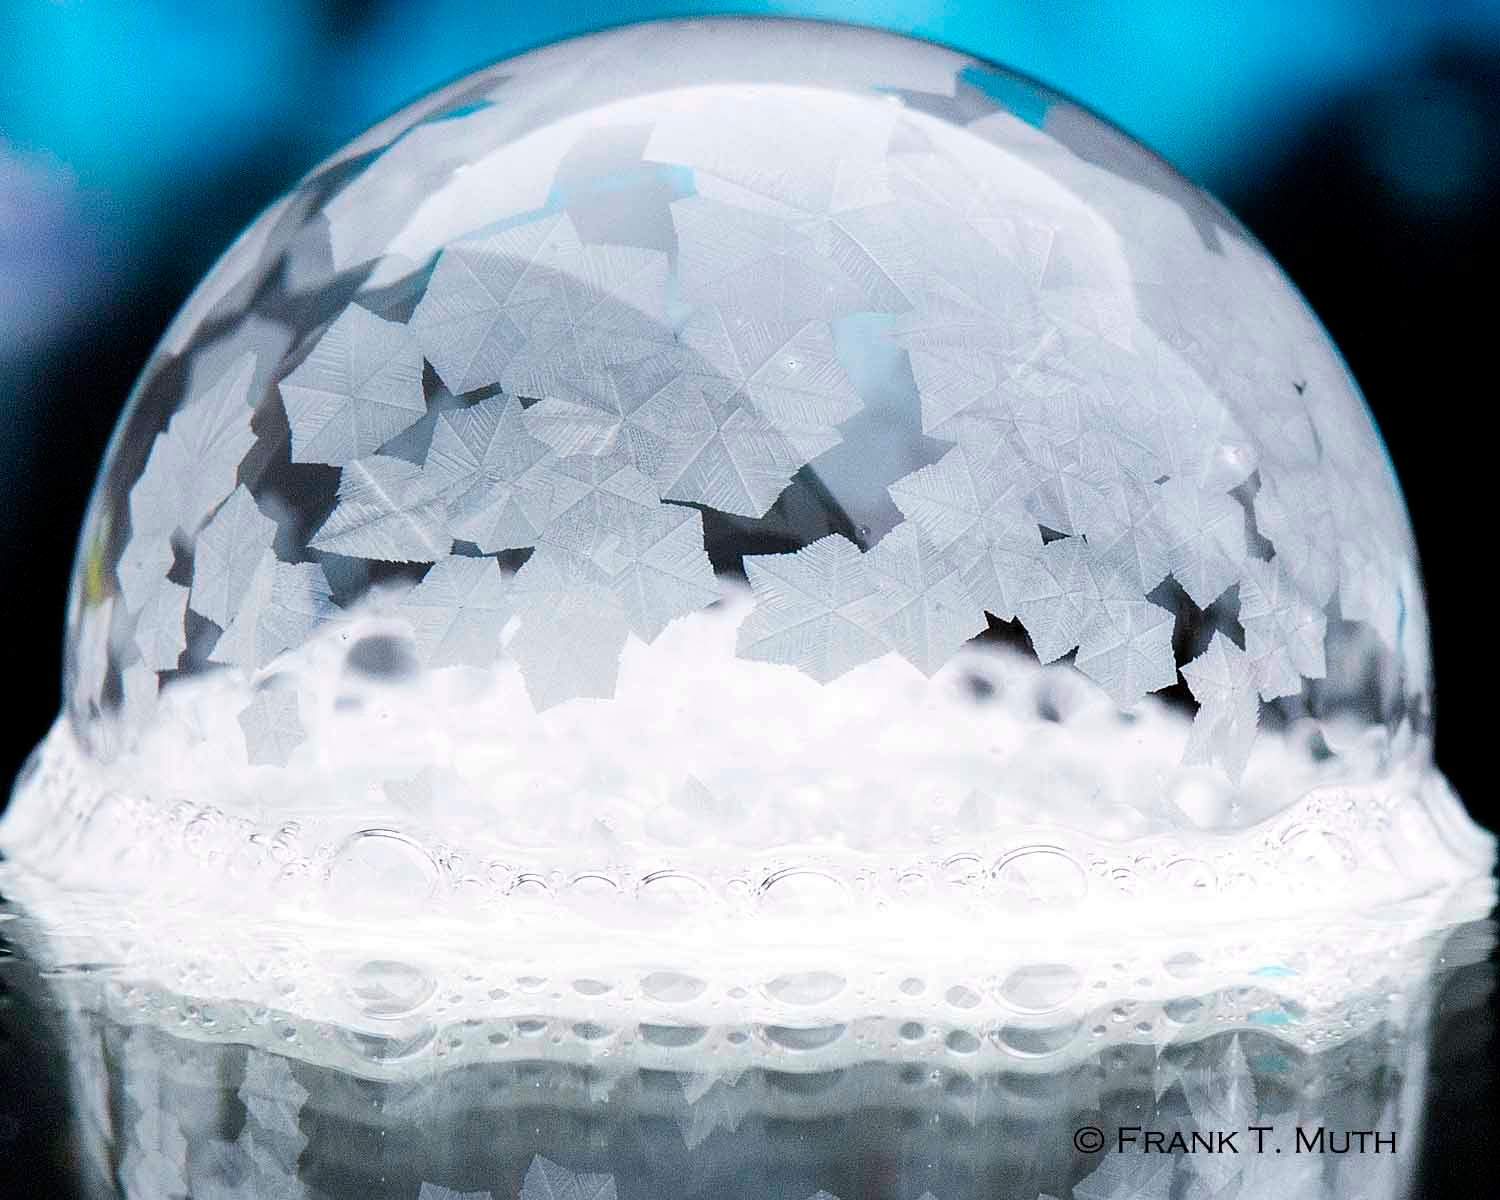 We asked for your best photos of frozen soap bubbles—and wow, did you deliver